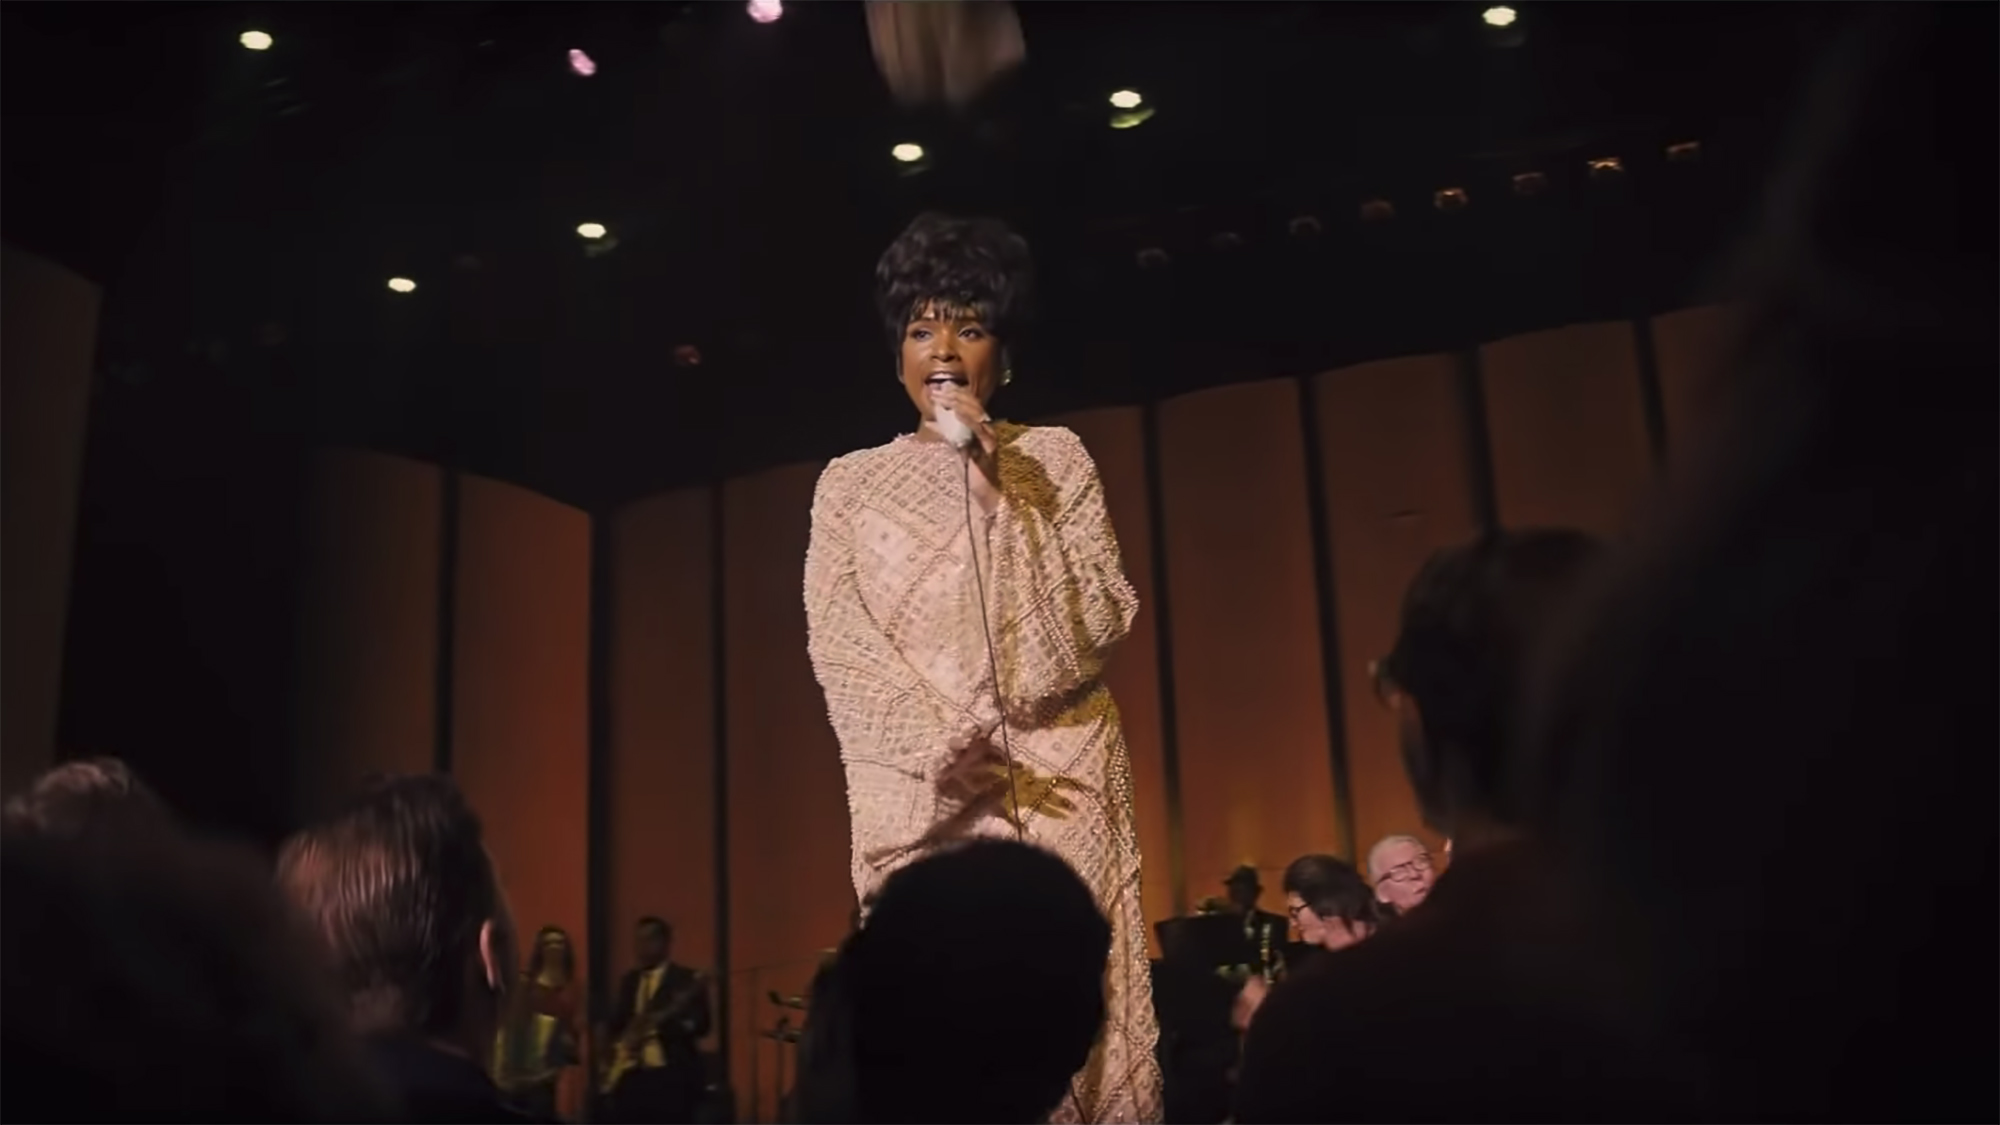 Jennifer Hudson is Aretha Franklin in new trailer for 'Respect' biopic